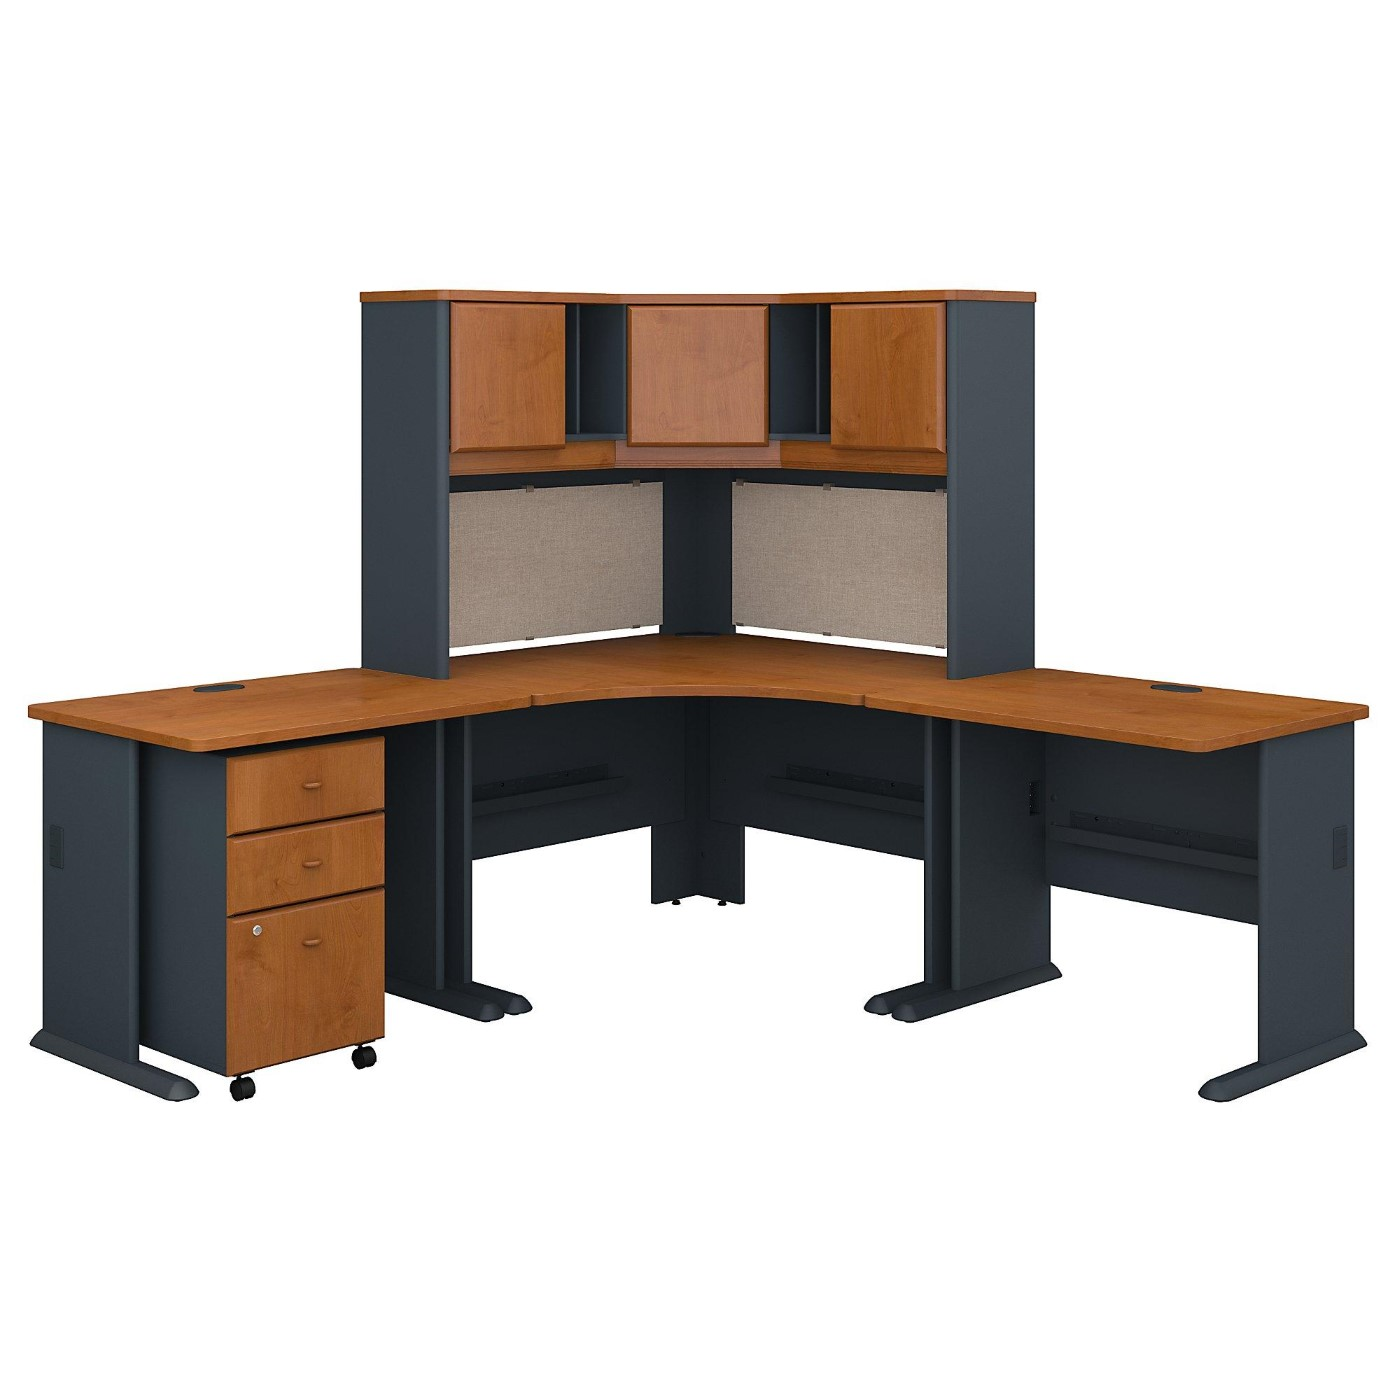 BUSH BUSINESS FURNITURE SERIES A 84W X 84D CORNER DESK WITH HUTCH AND MOBILE FILE CABINET. FREE SHIPPING.